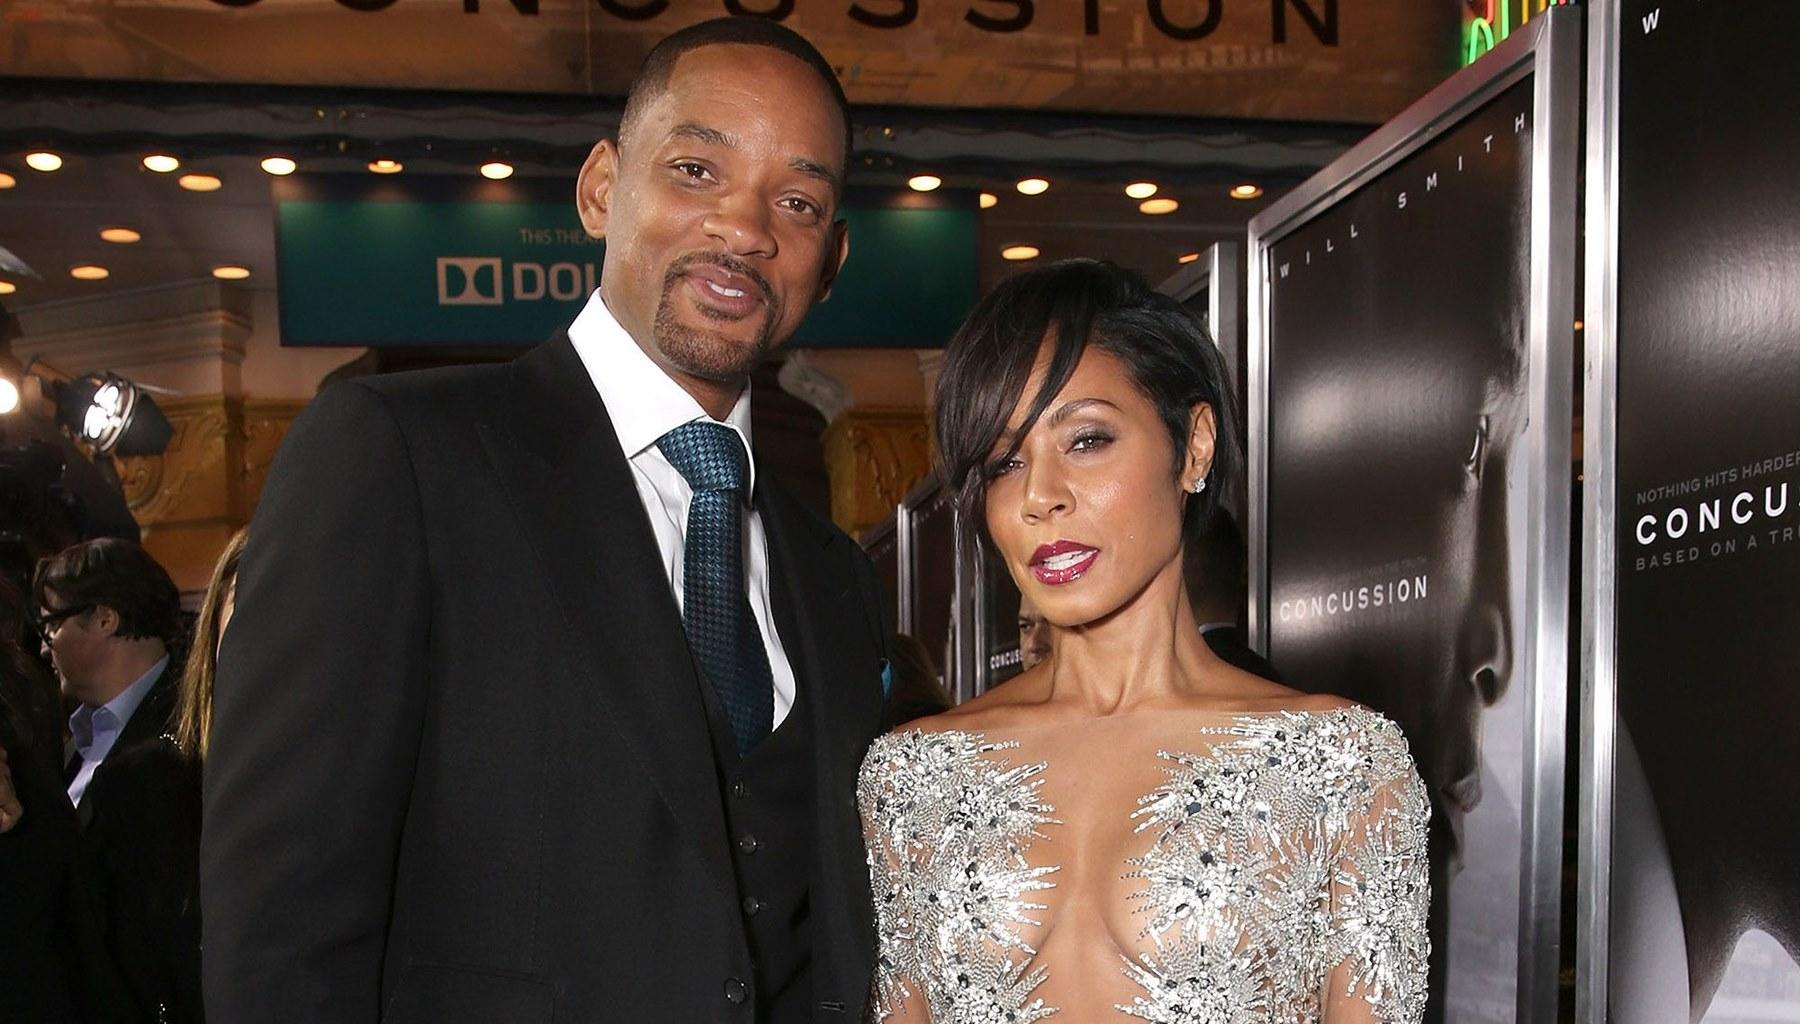 Jada Pinkett Smith And Will Smith Respond To August Alsina's Claim That They Have An Open Marriage